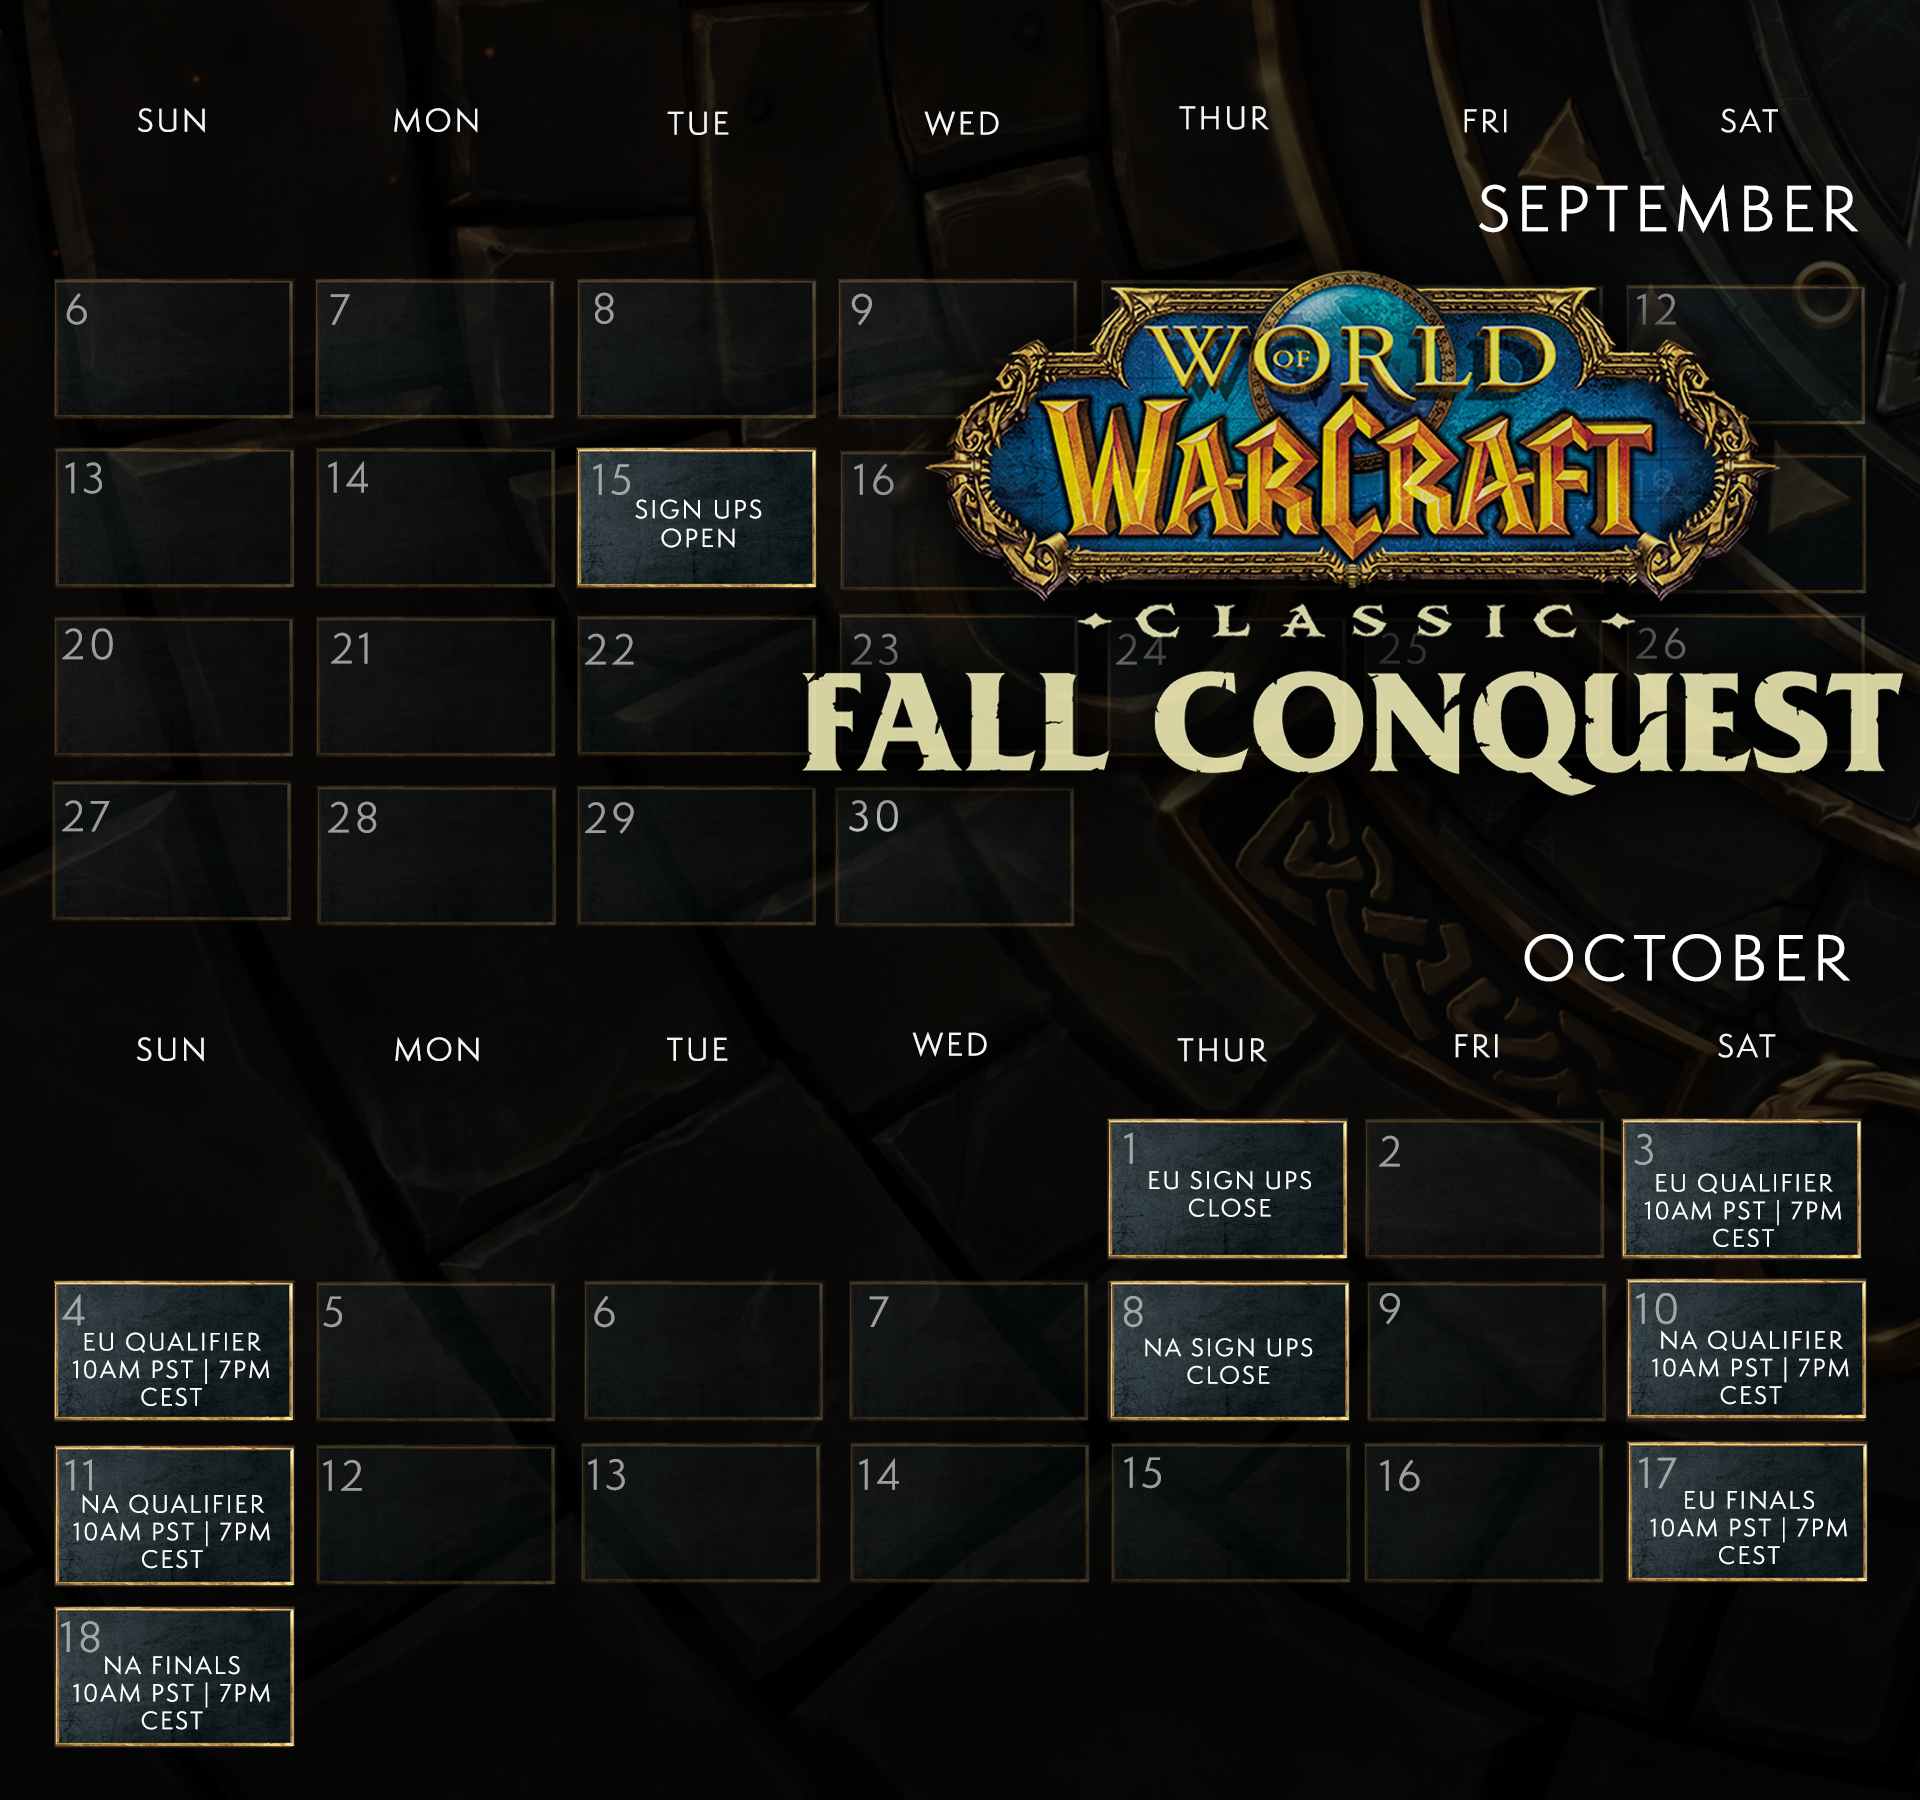 Conquest Schedule.png